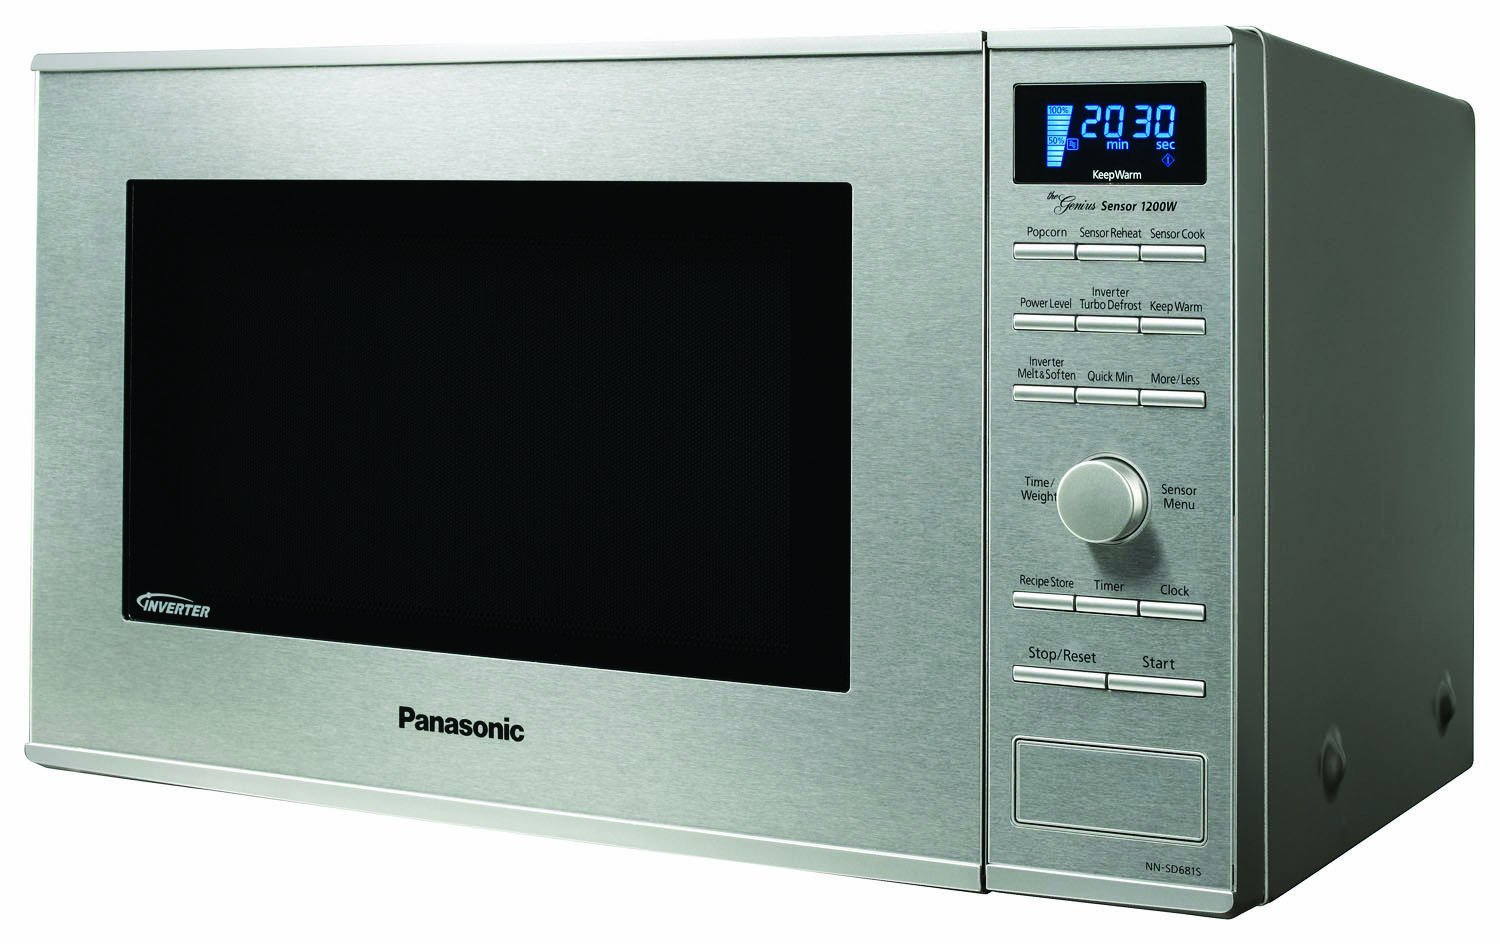 Countertop Convection Oven With Microwave : panasonic countertop microwave oven top best microwave oven ovens 2013